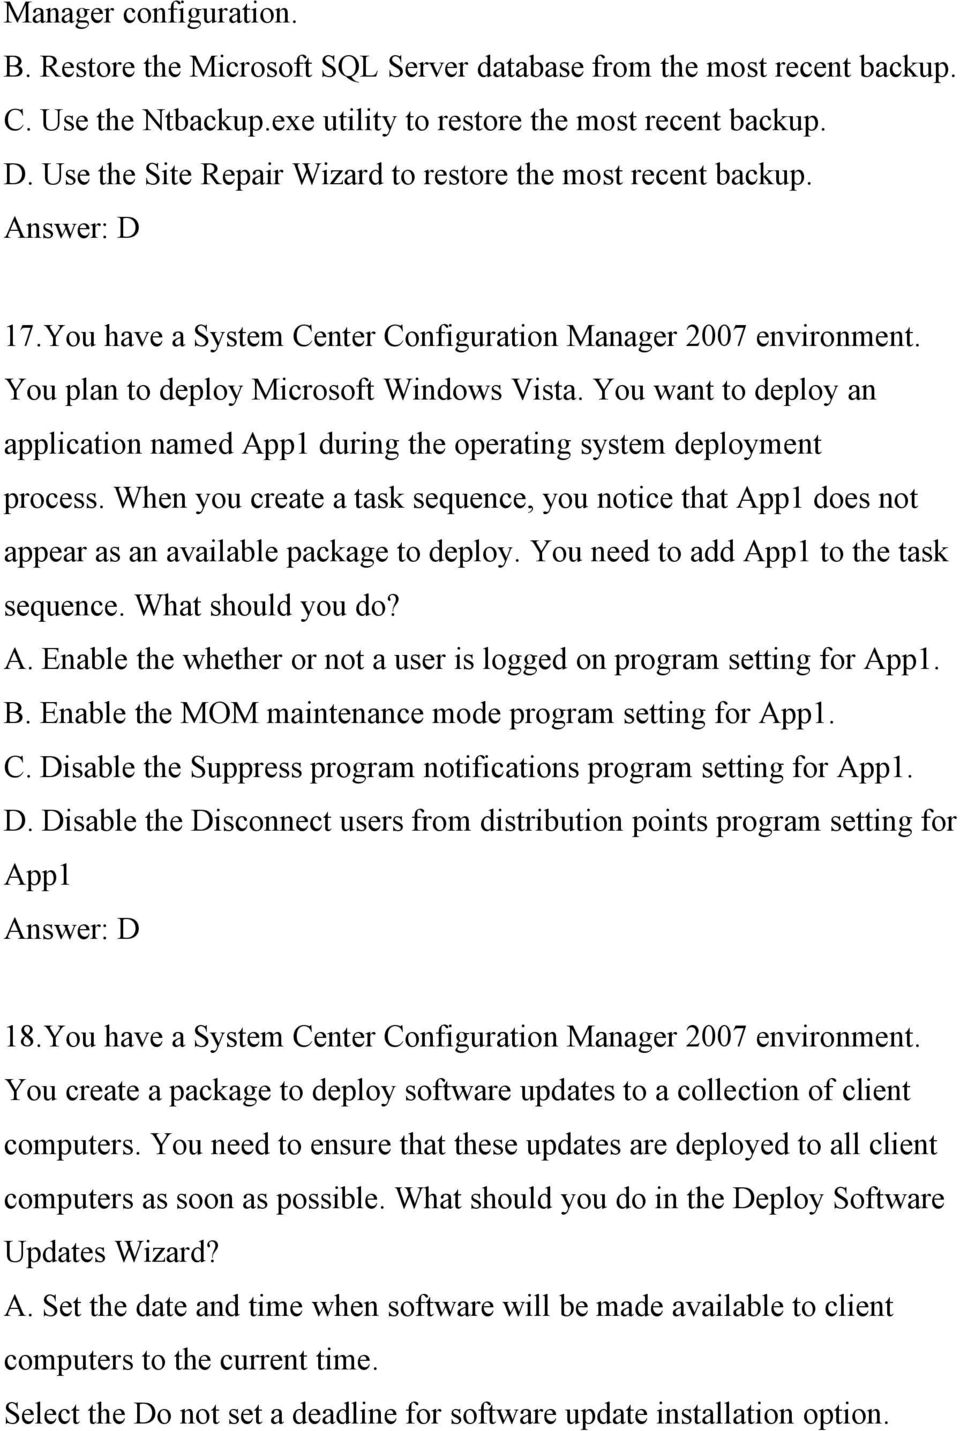 You want to deploy an application named App1 during the operating system deployment process. When you create a task sequence, you notice that App1 does not appear as an available package to deploy.